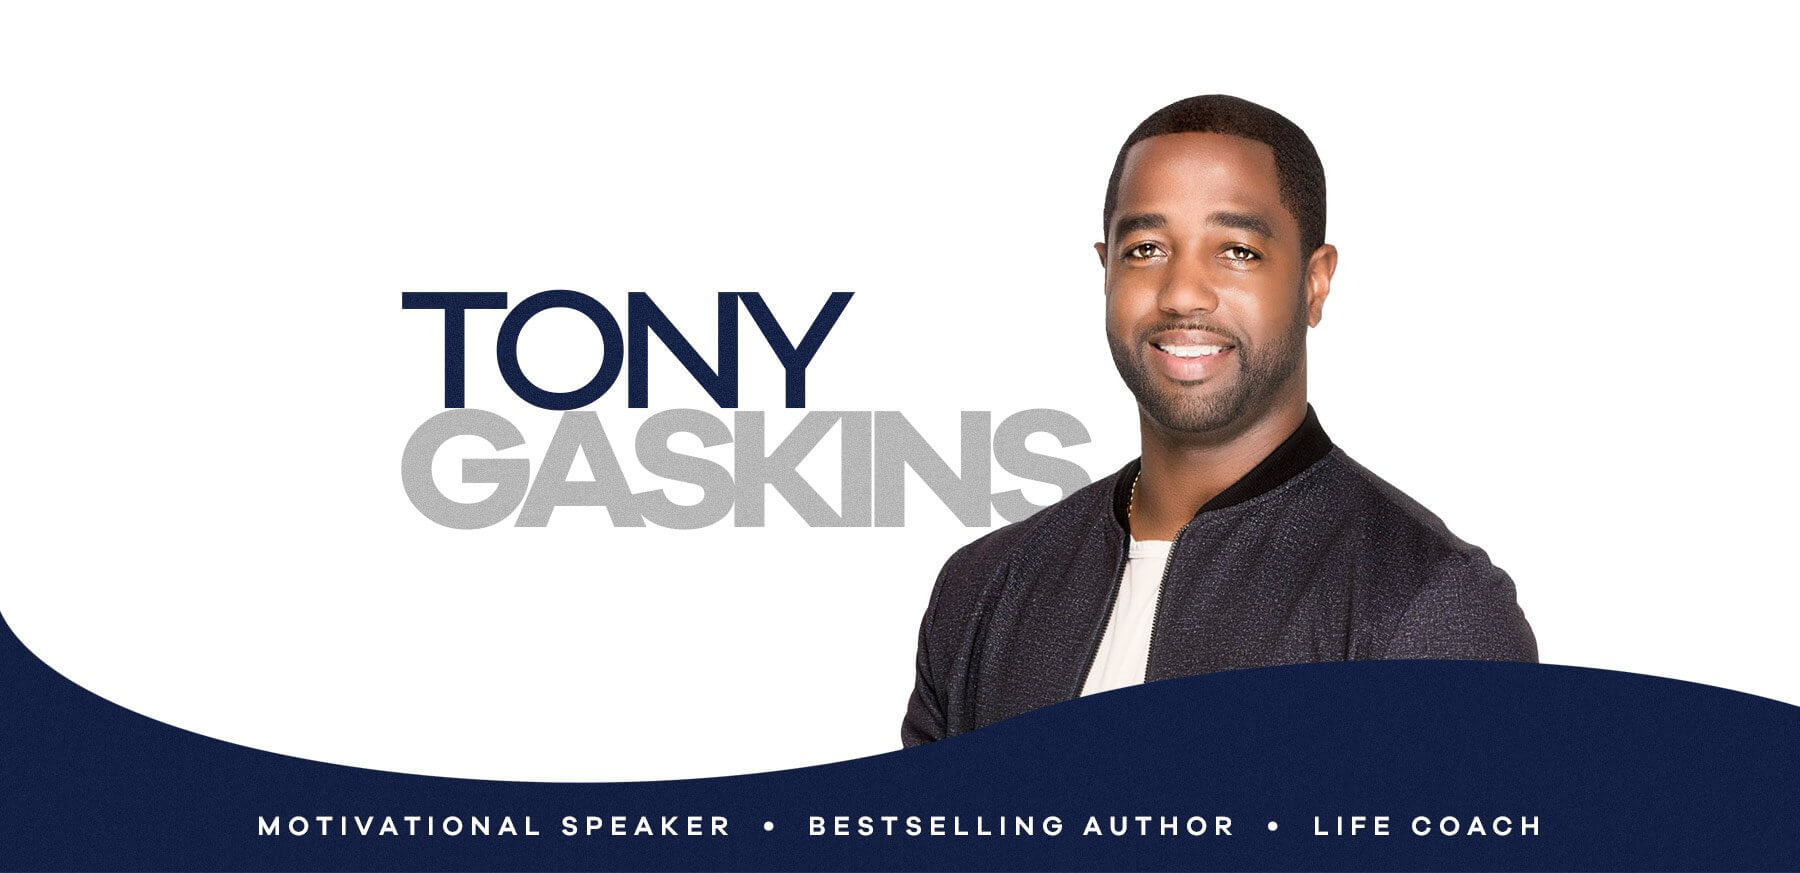 Tony Gaskins Entrepreneur Mastermind Program